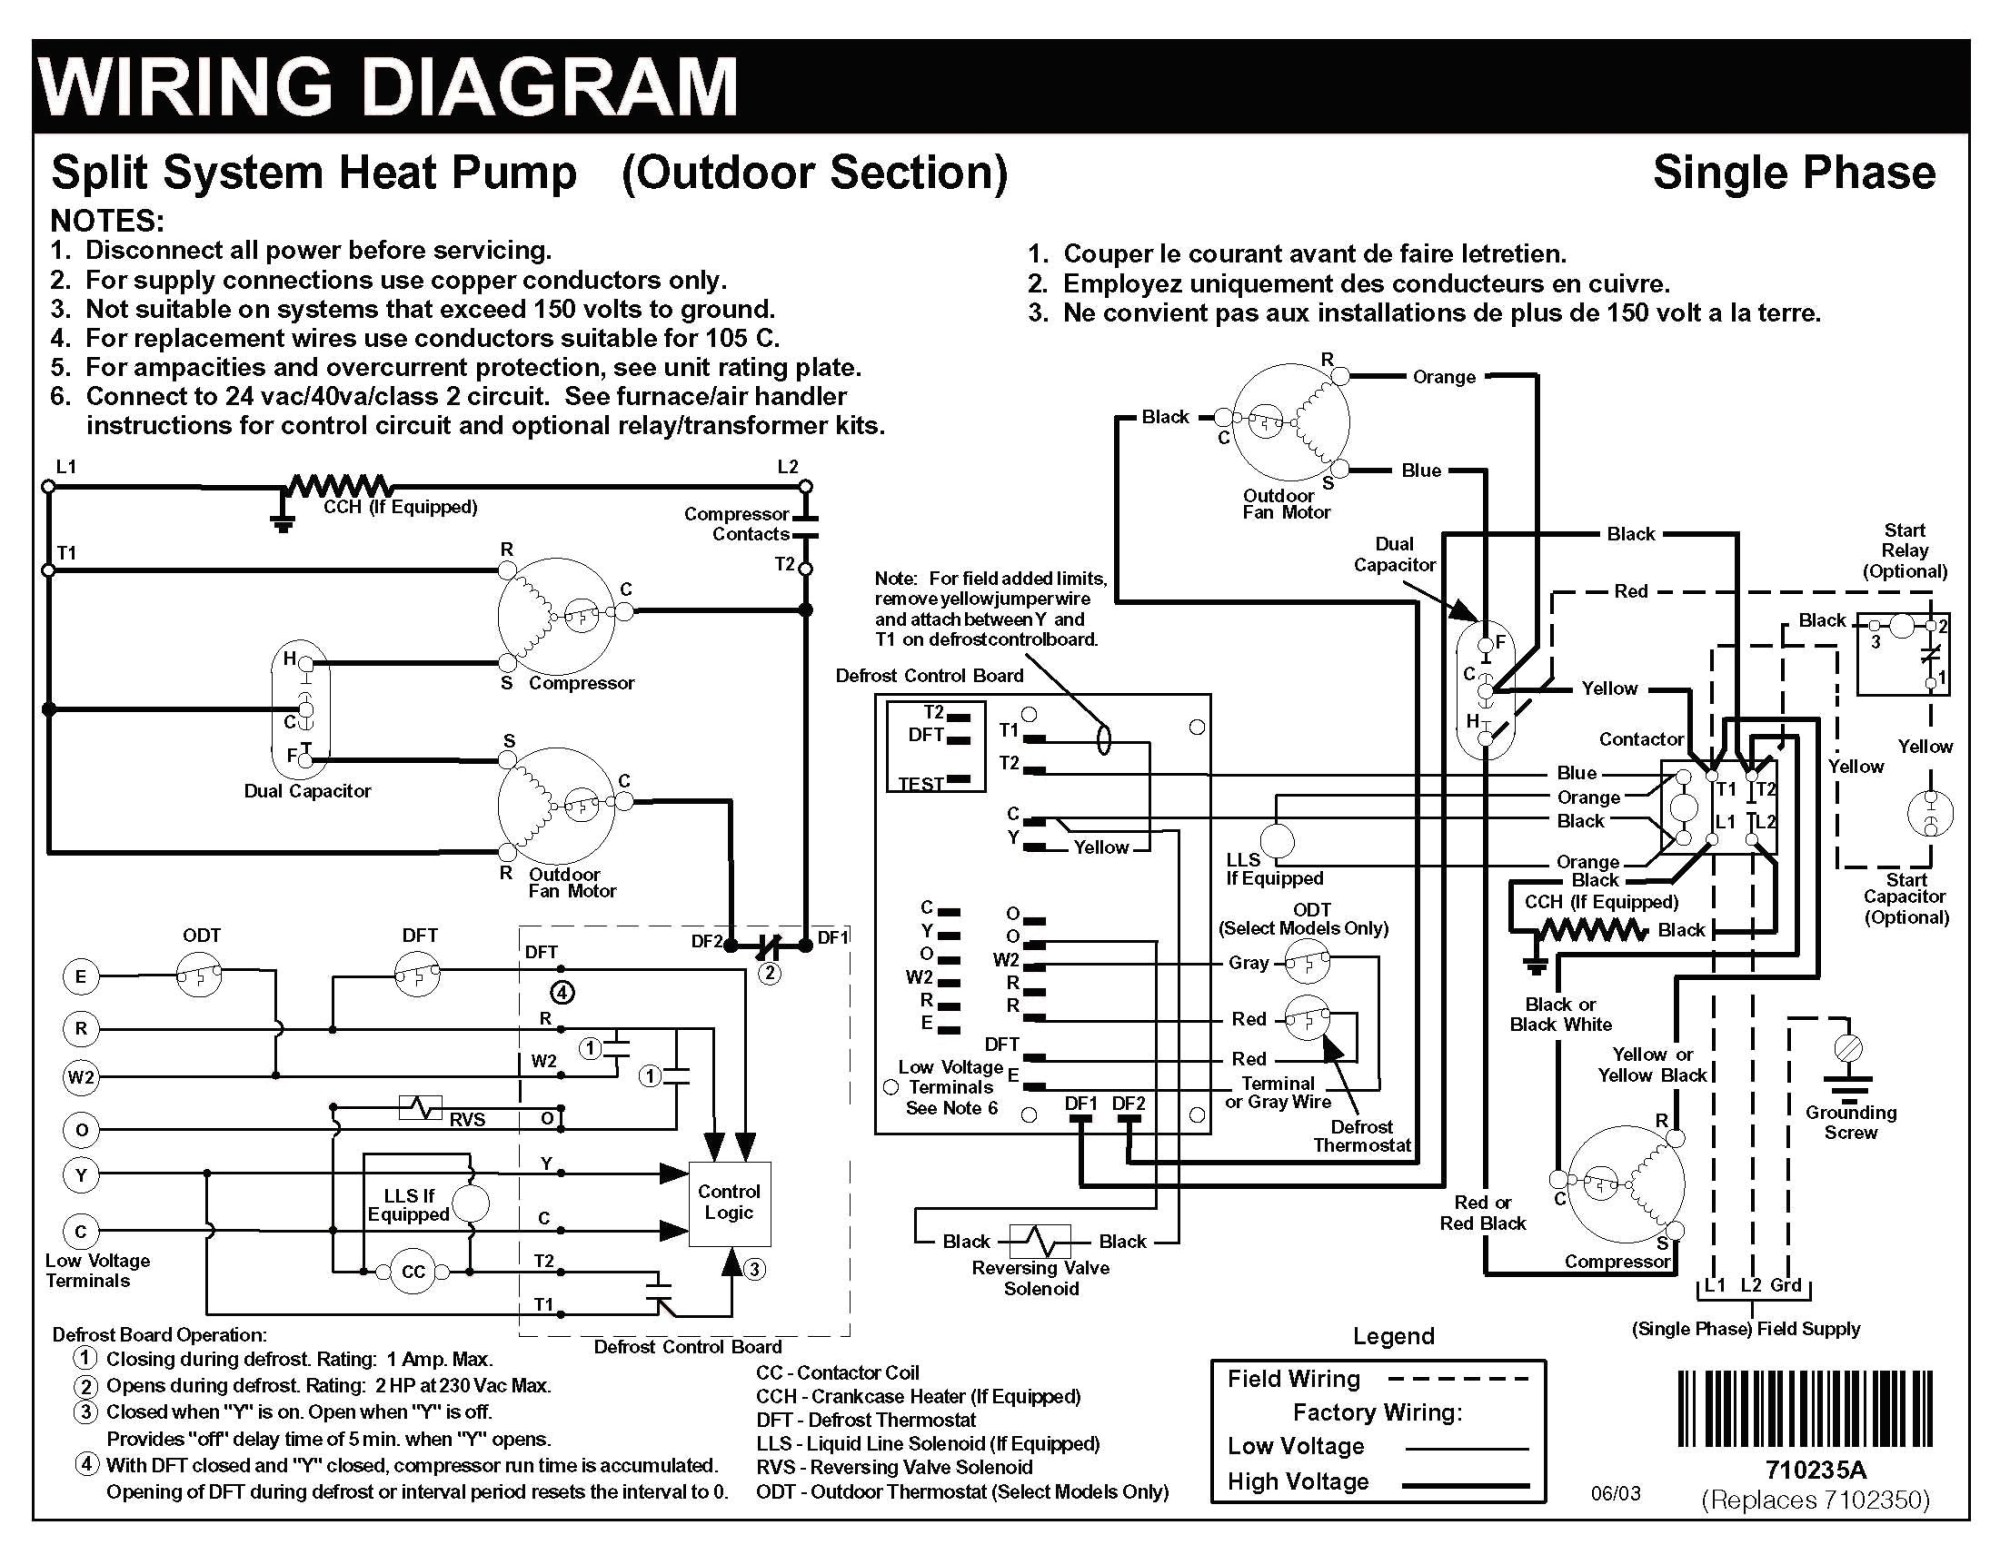 hight resolution of carrier heat pump wiring diagram thermostat free wiring diagram split air conditioning system diagram carrier heat